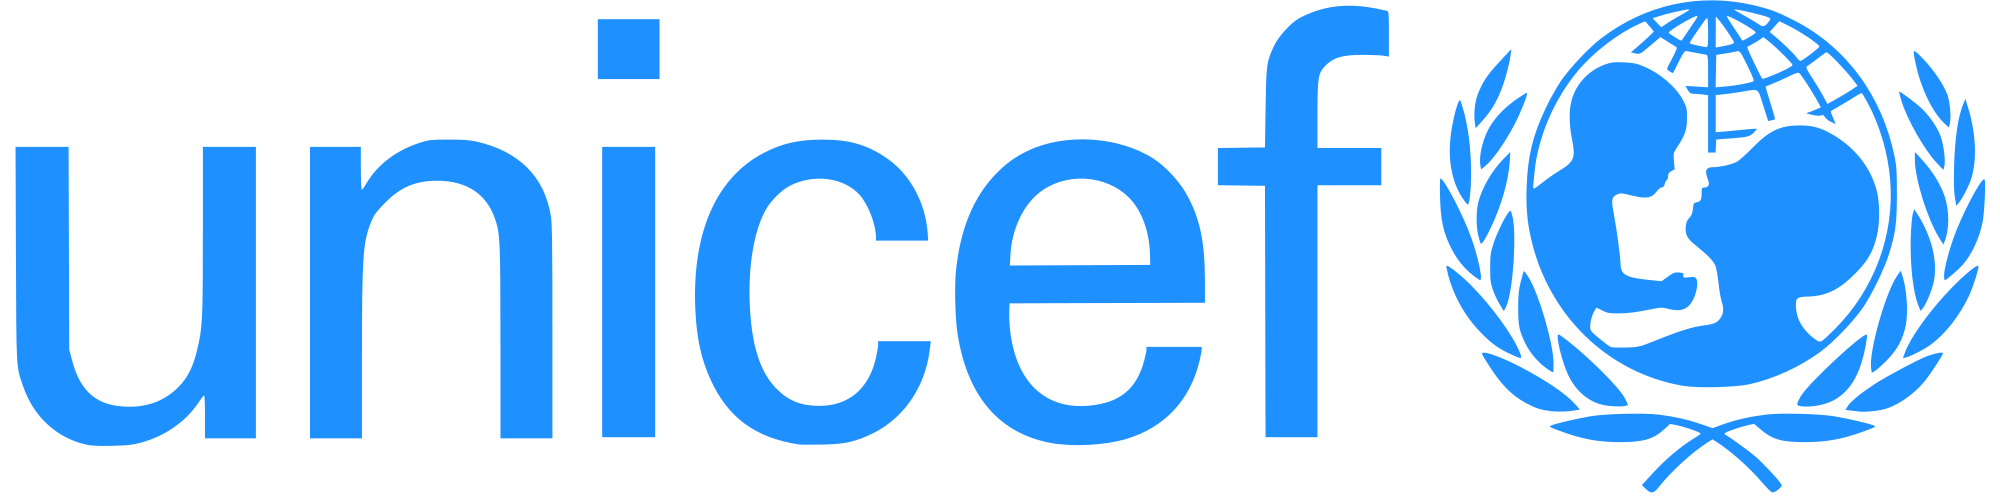 UNICEF Logo - File:UNICEF Logo.png - Wikimedia Commons